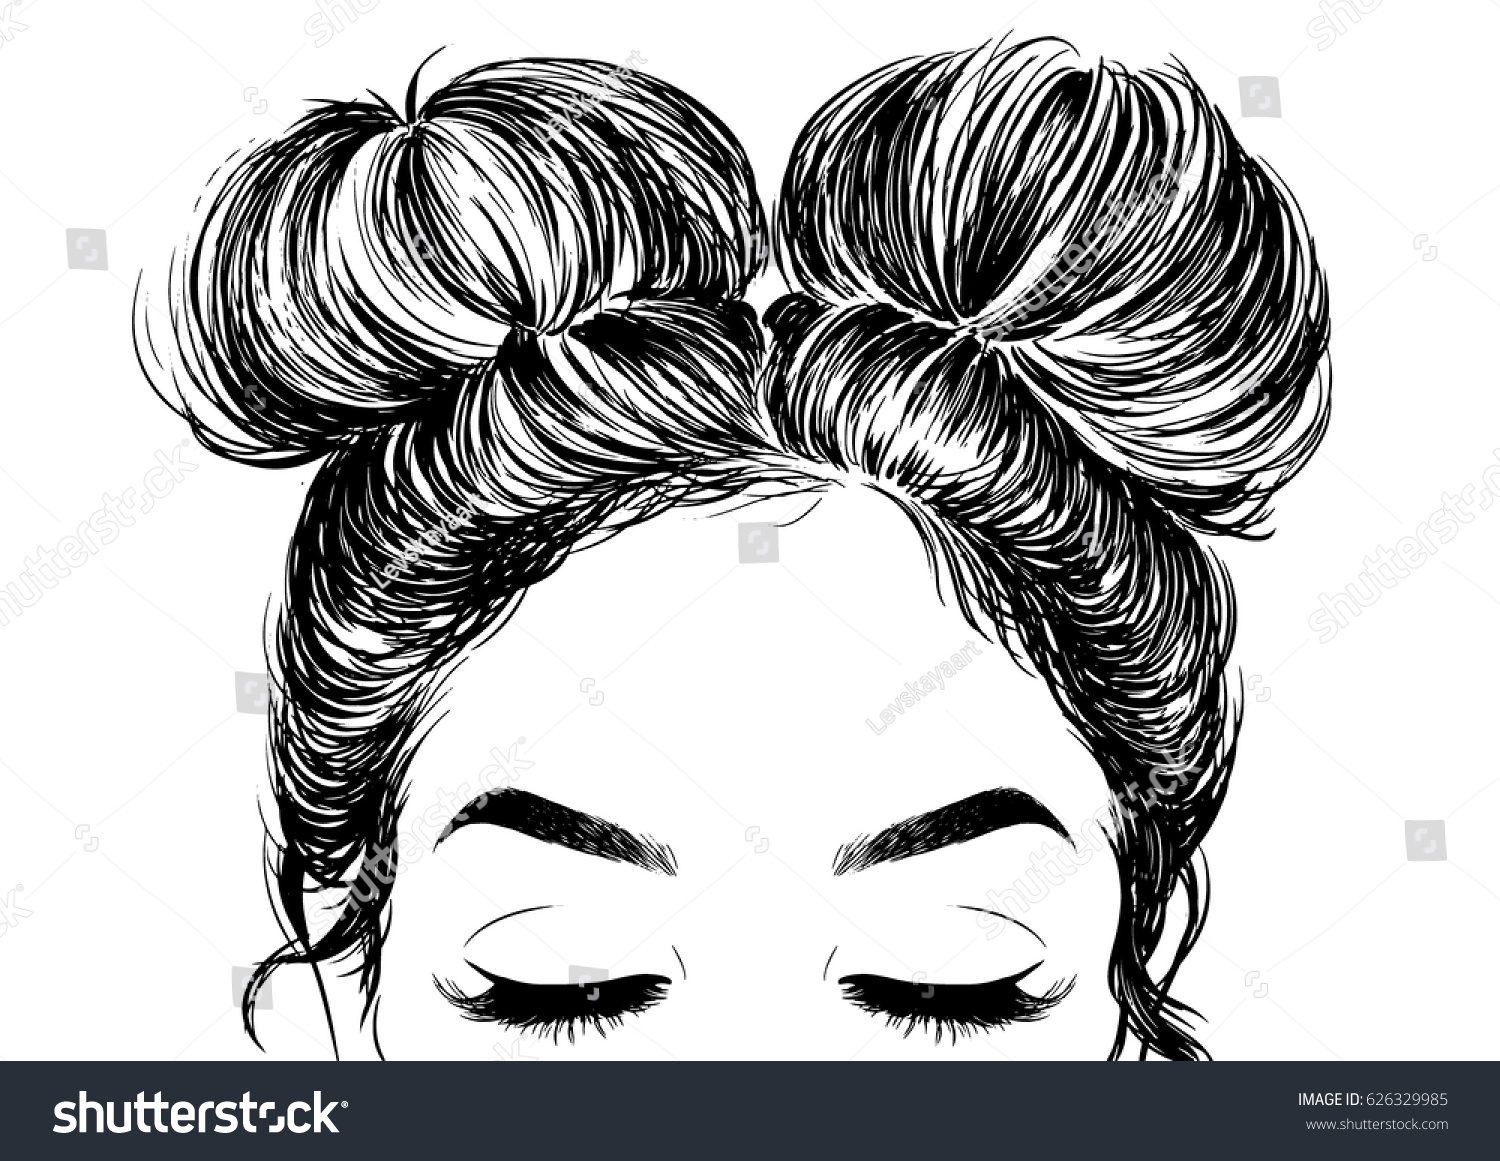 Hairstyle Vector: Hairstyle Double Buns Stock Vector 626329985